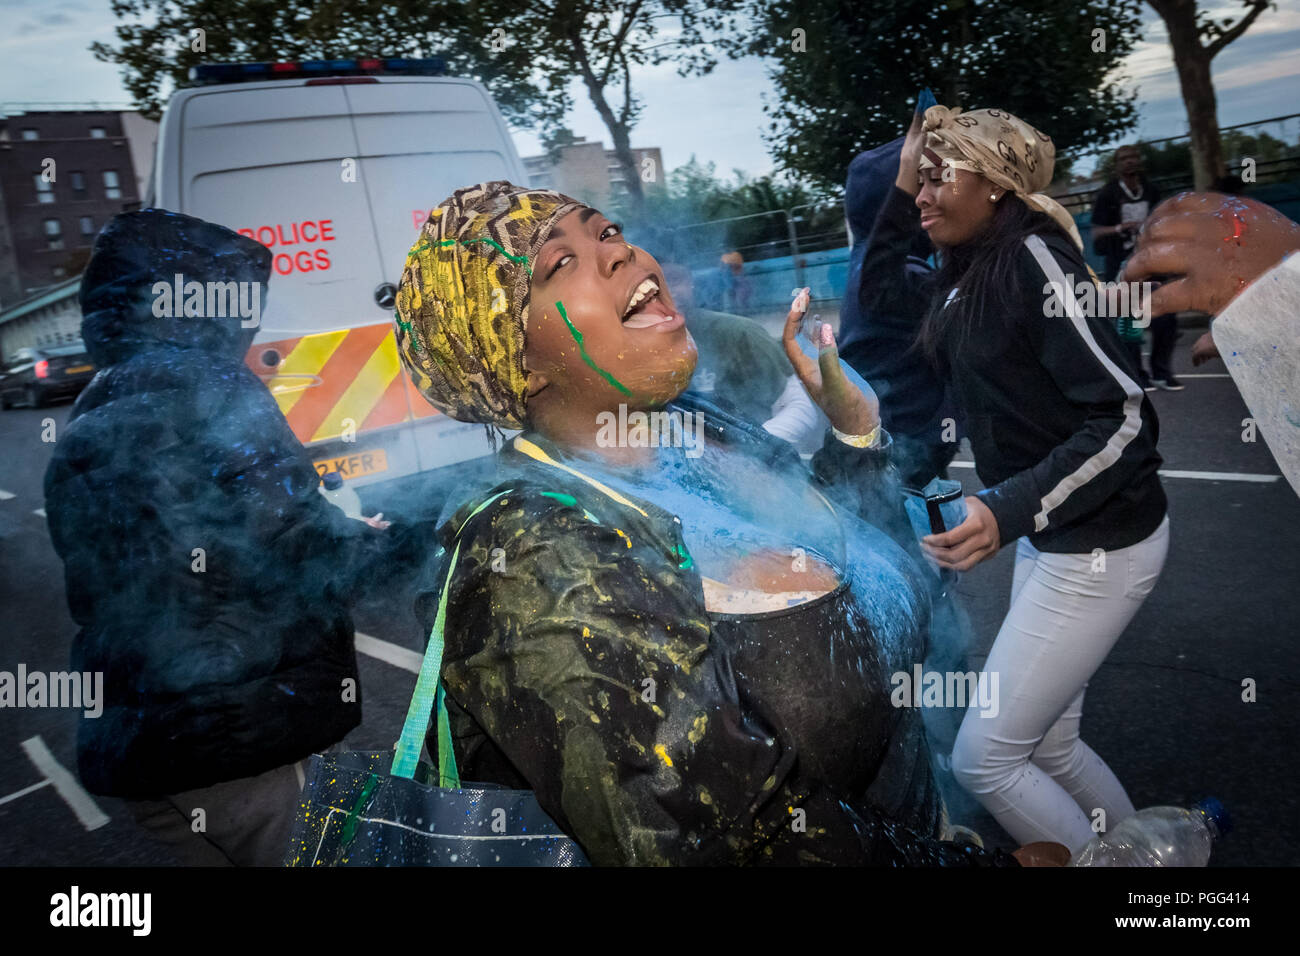 London, UK. 26th August 2018. Jouvert parade starts the Notting Hill Carnival 2018 festivities with the traditional 'dirty' paint, oil and coloured powder being thrown to the sounds of African drums and rhythm bands. Credit: Guy Corbishley / Alamy Live News - Stock Image